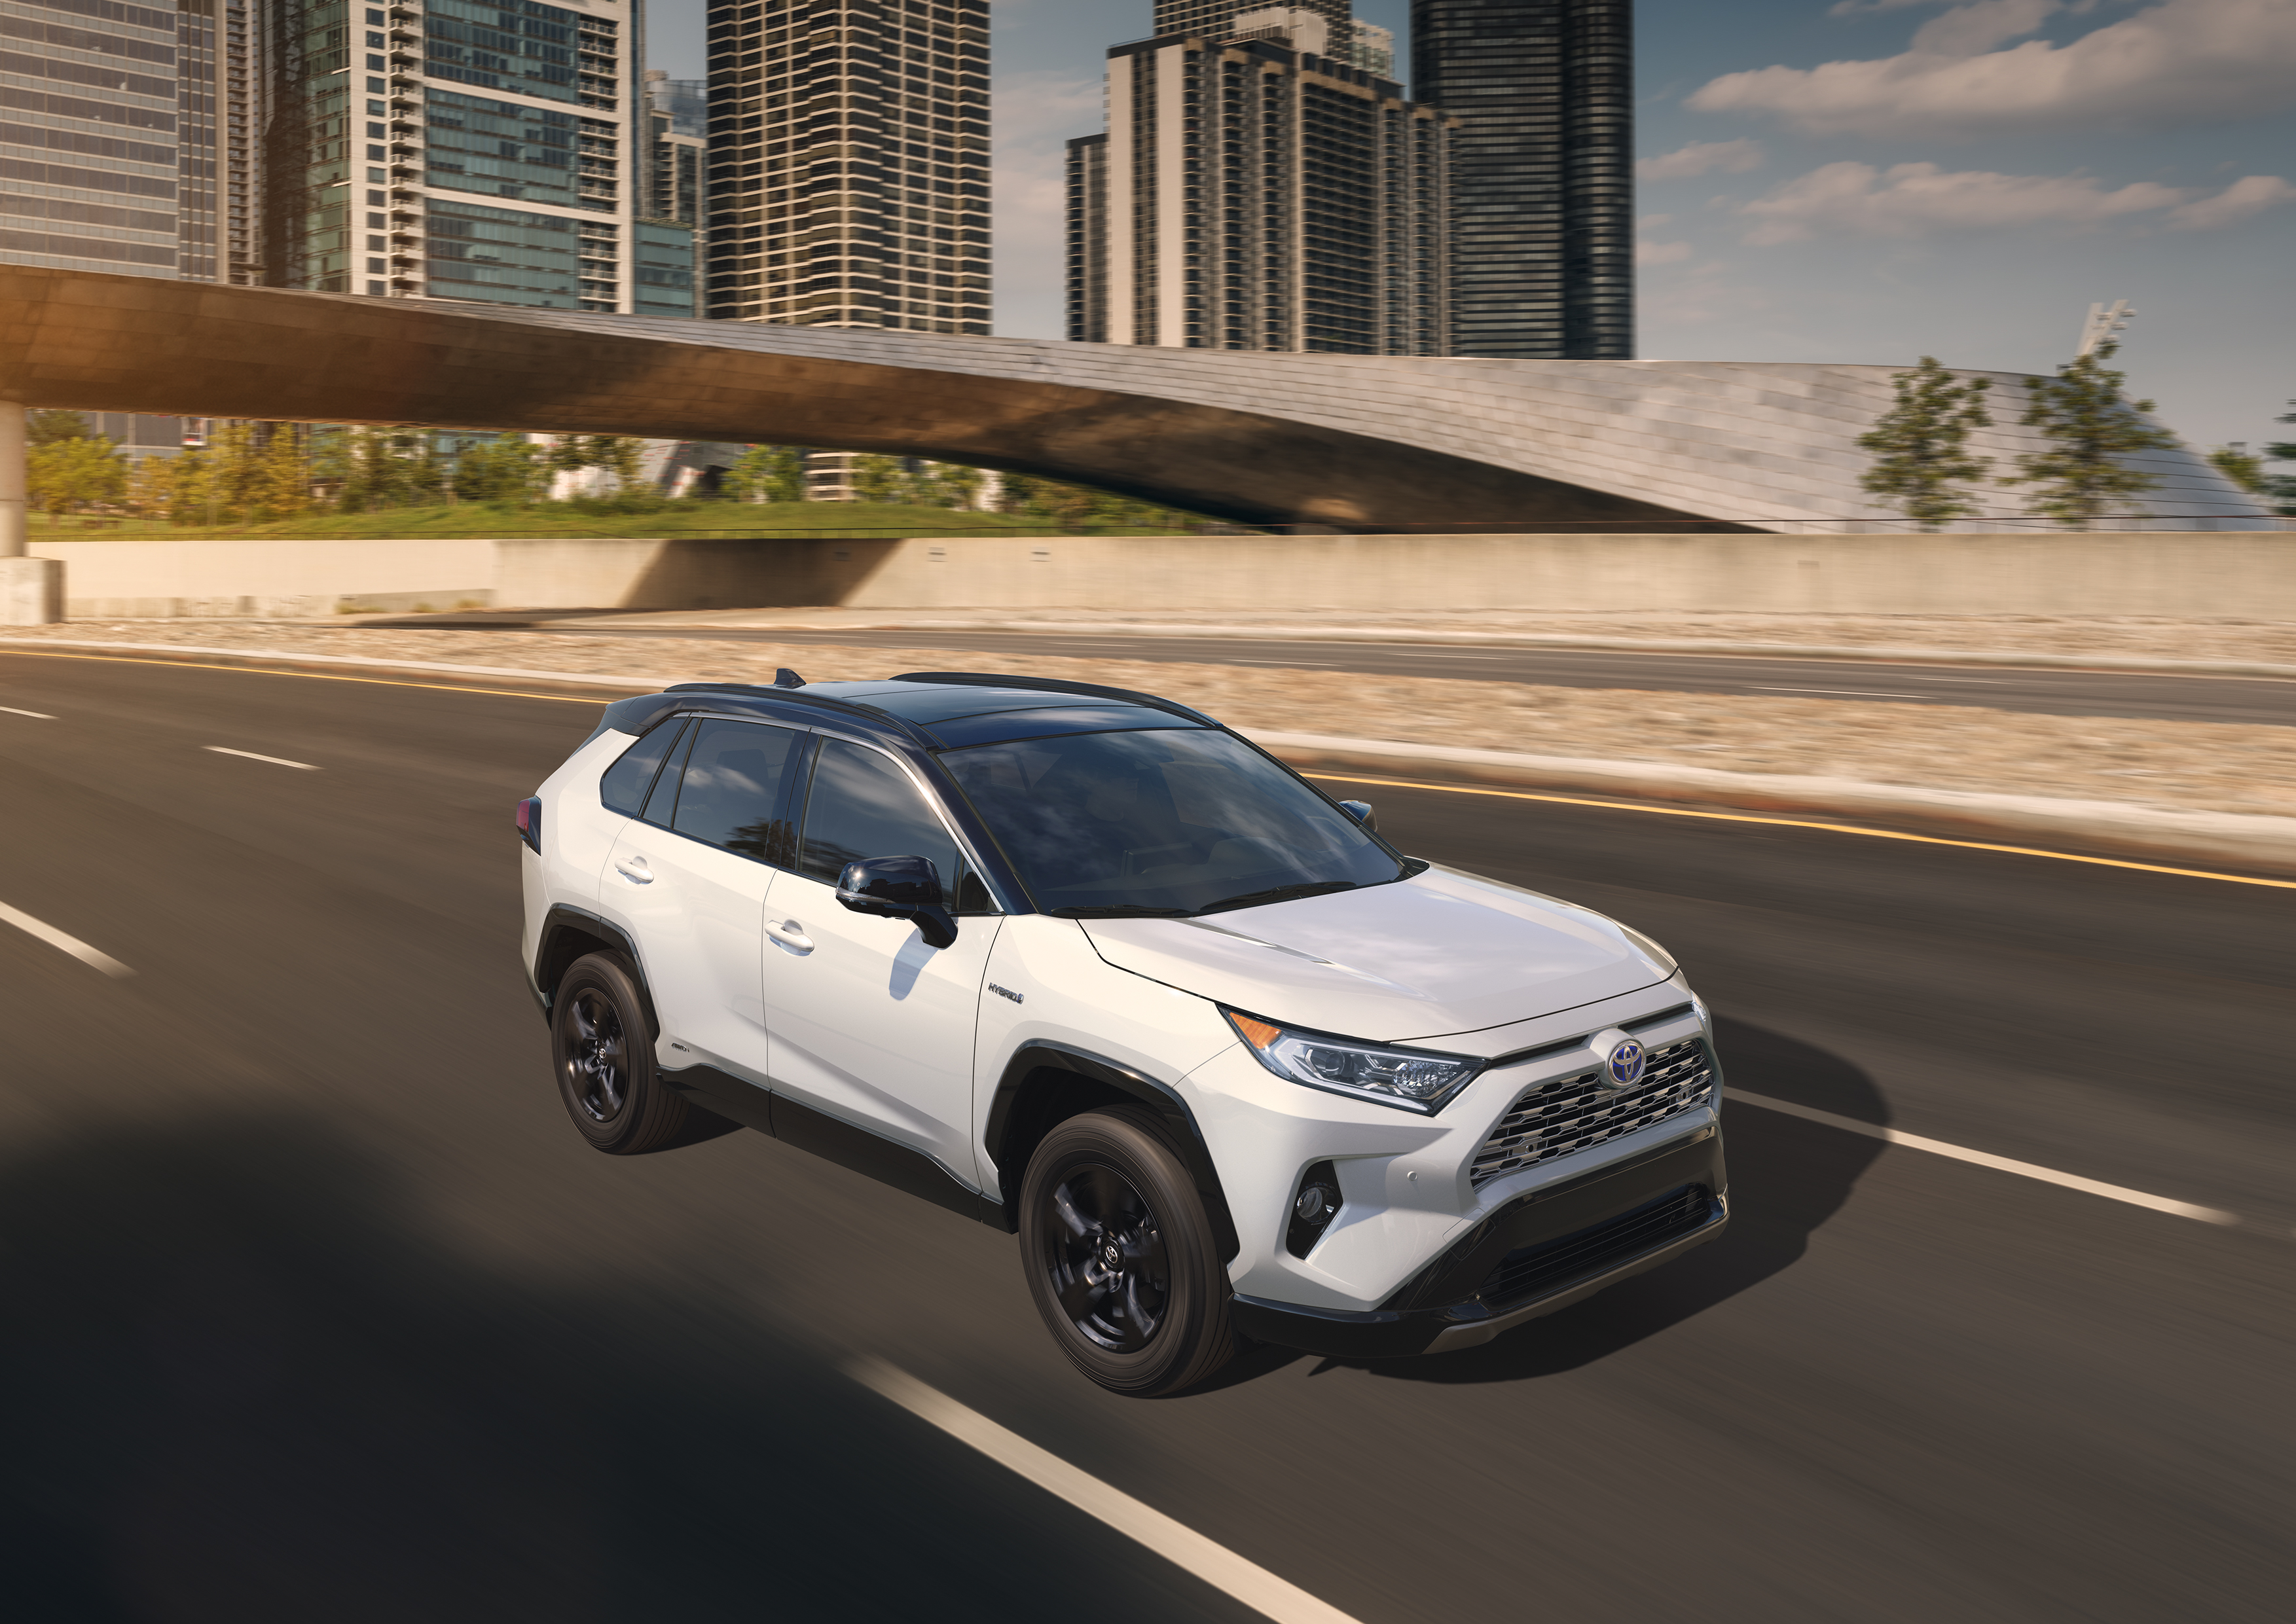 The Best Toyota Rav4 Years For A Used Model